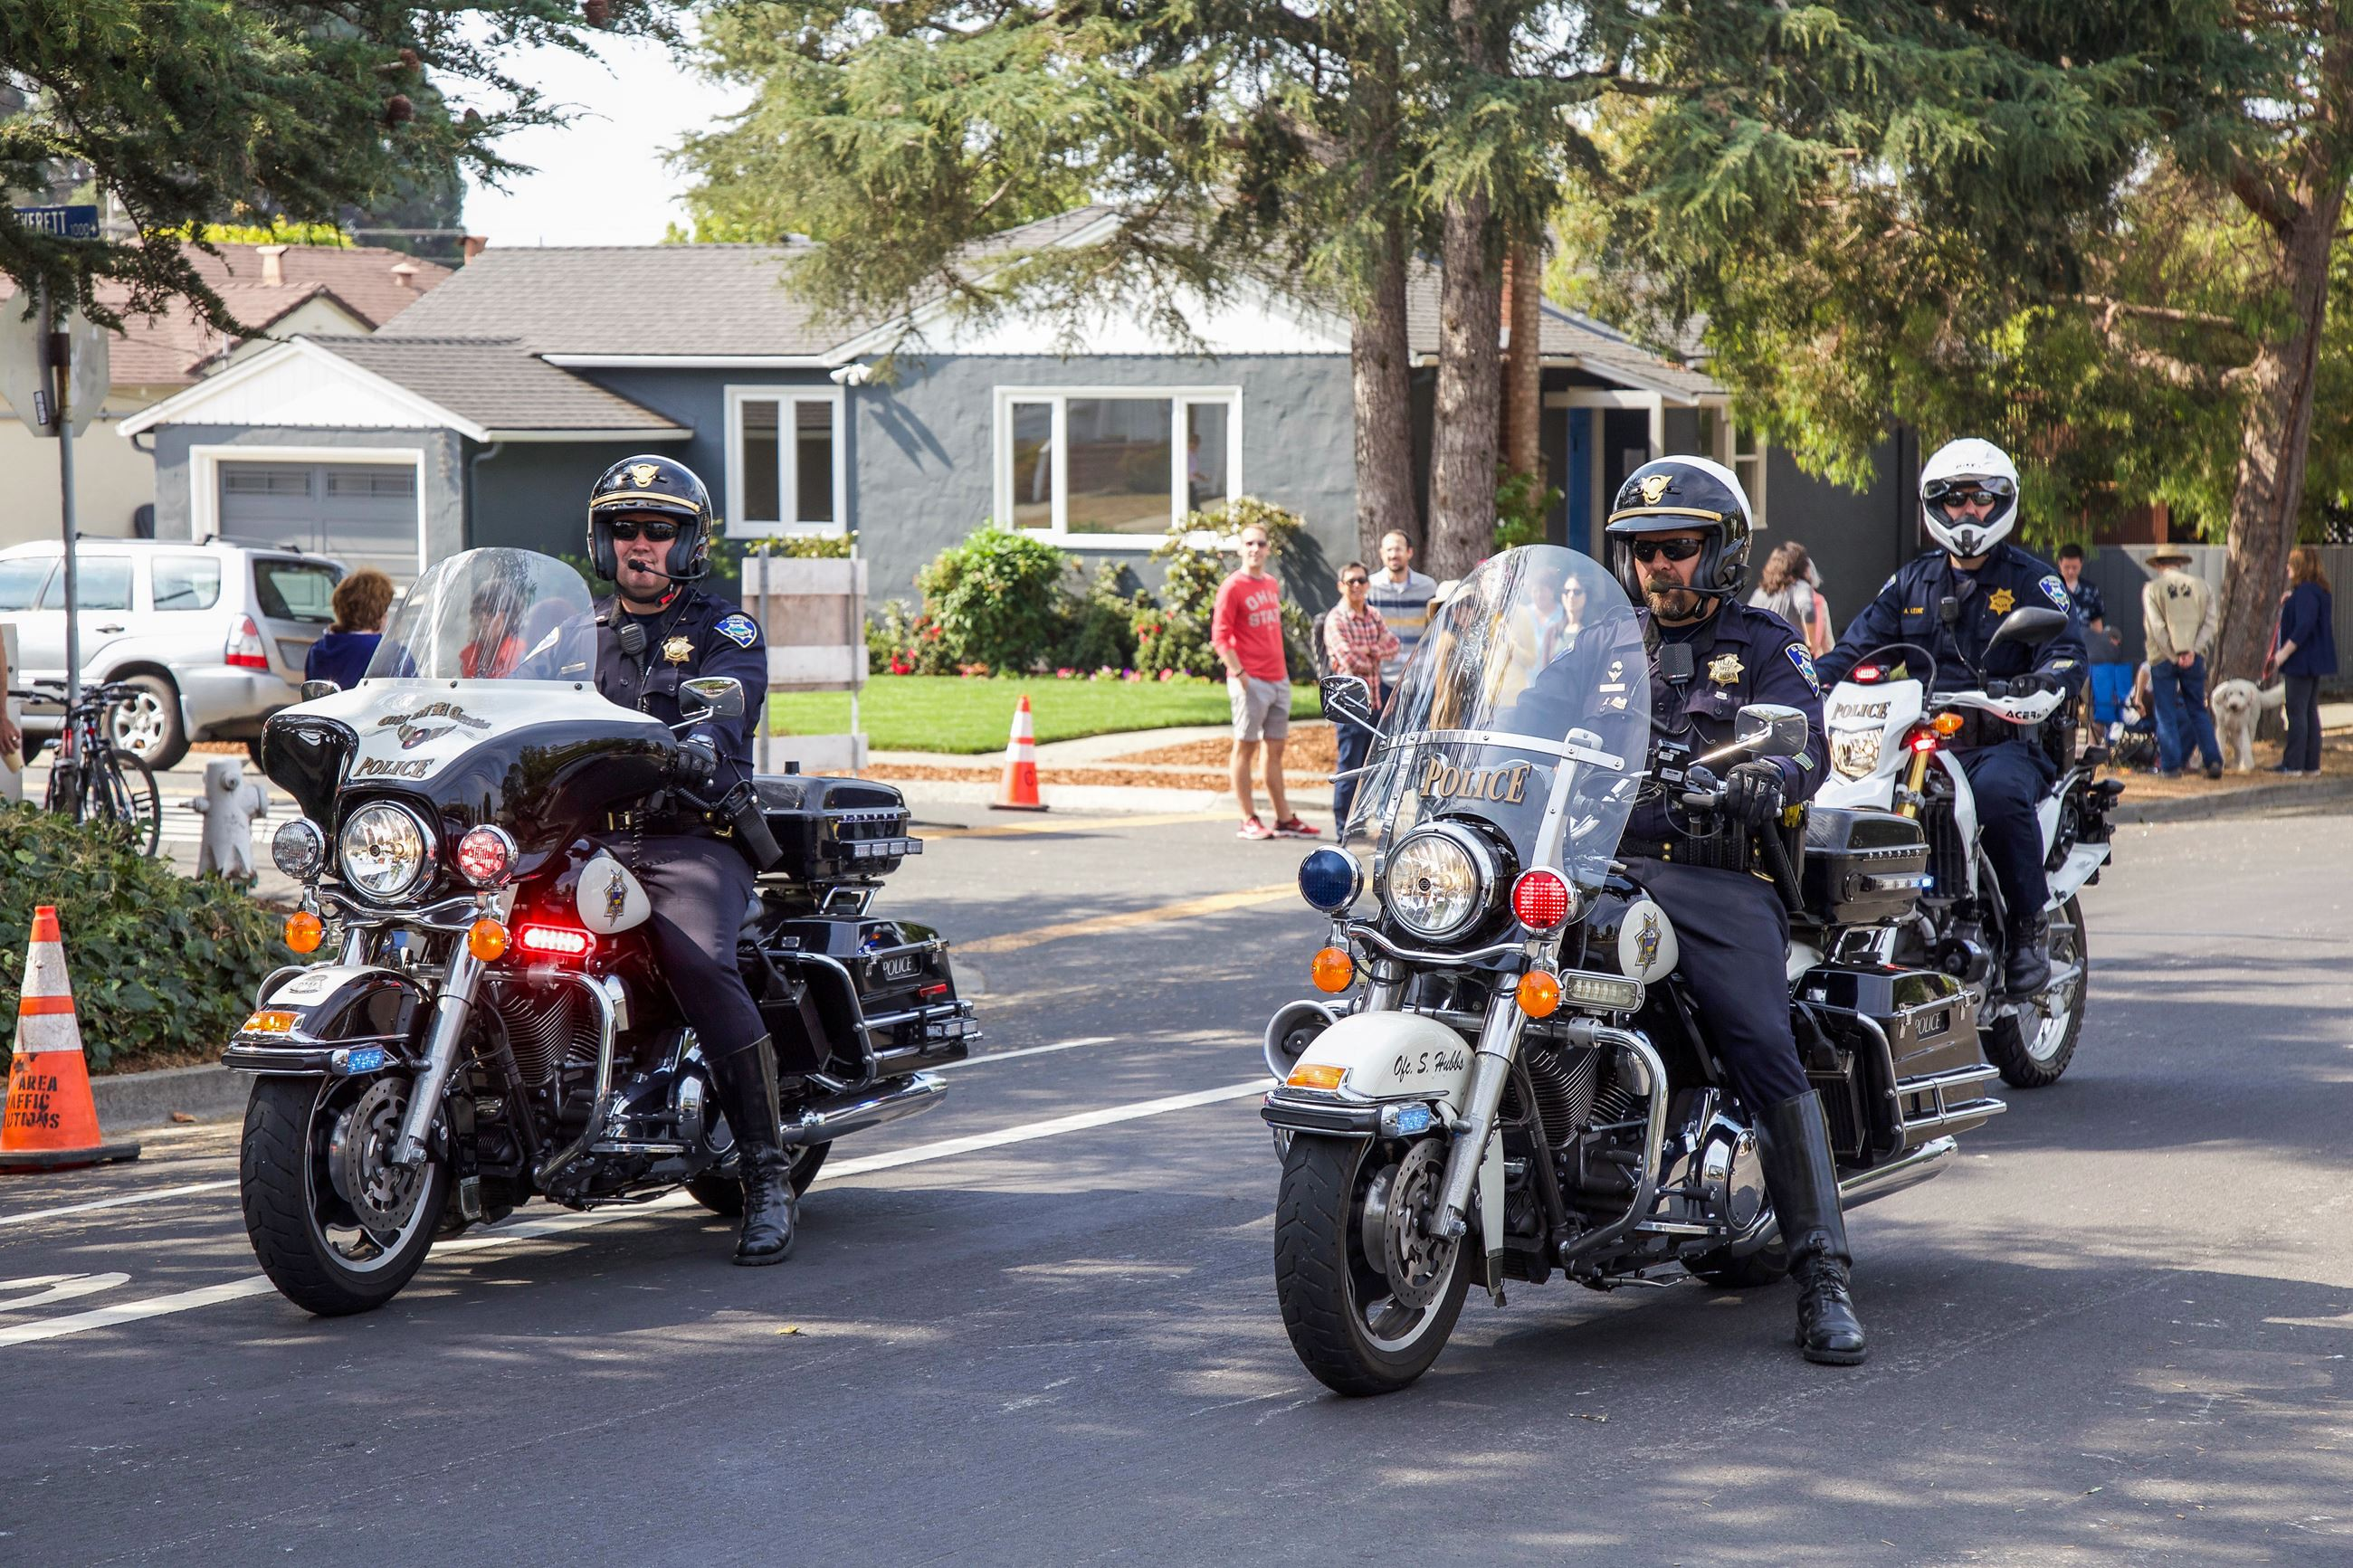 ECPD motorcycle officers in Parade - Photo by Marin Stuart